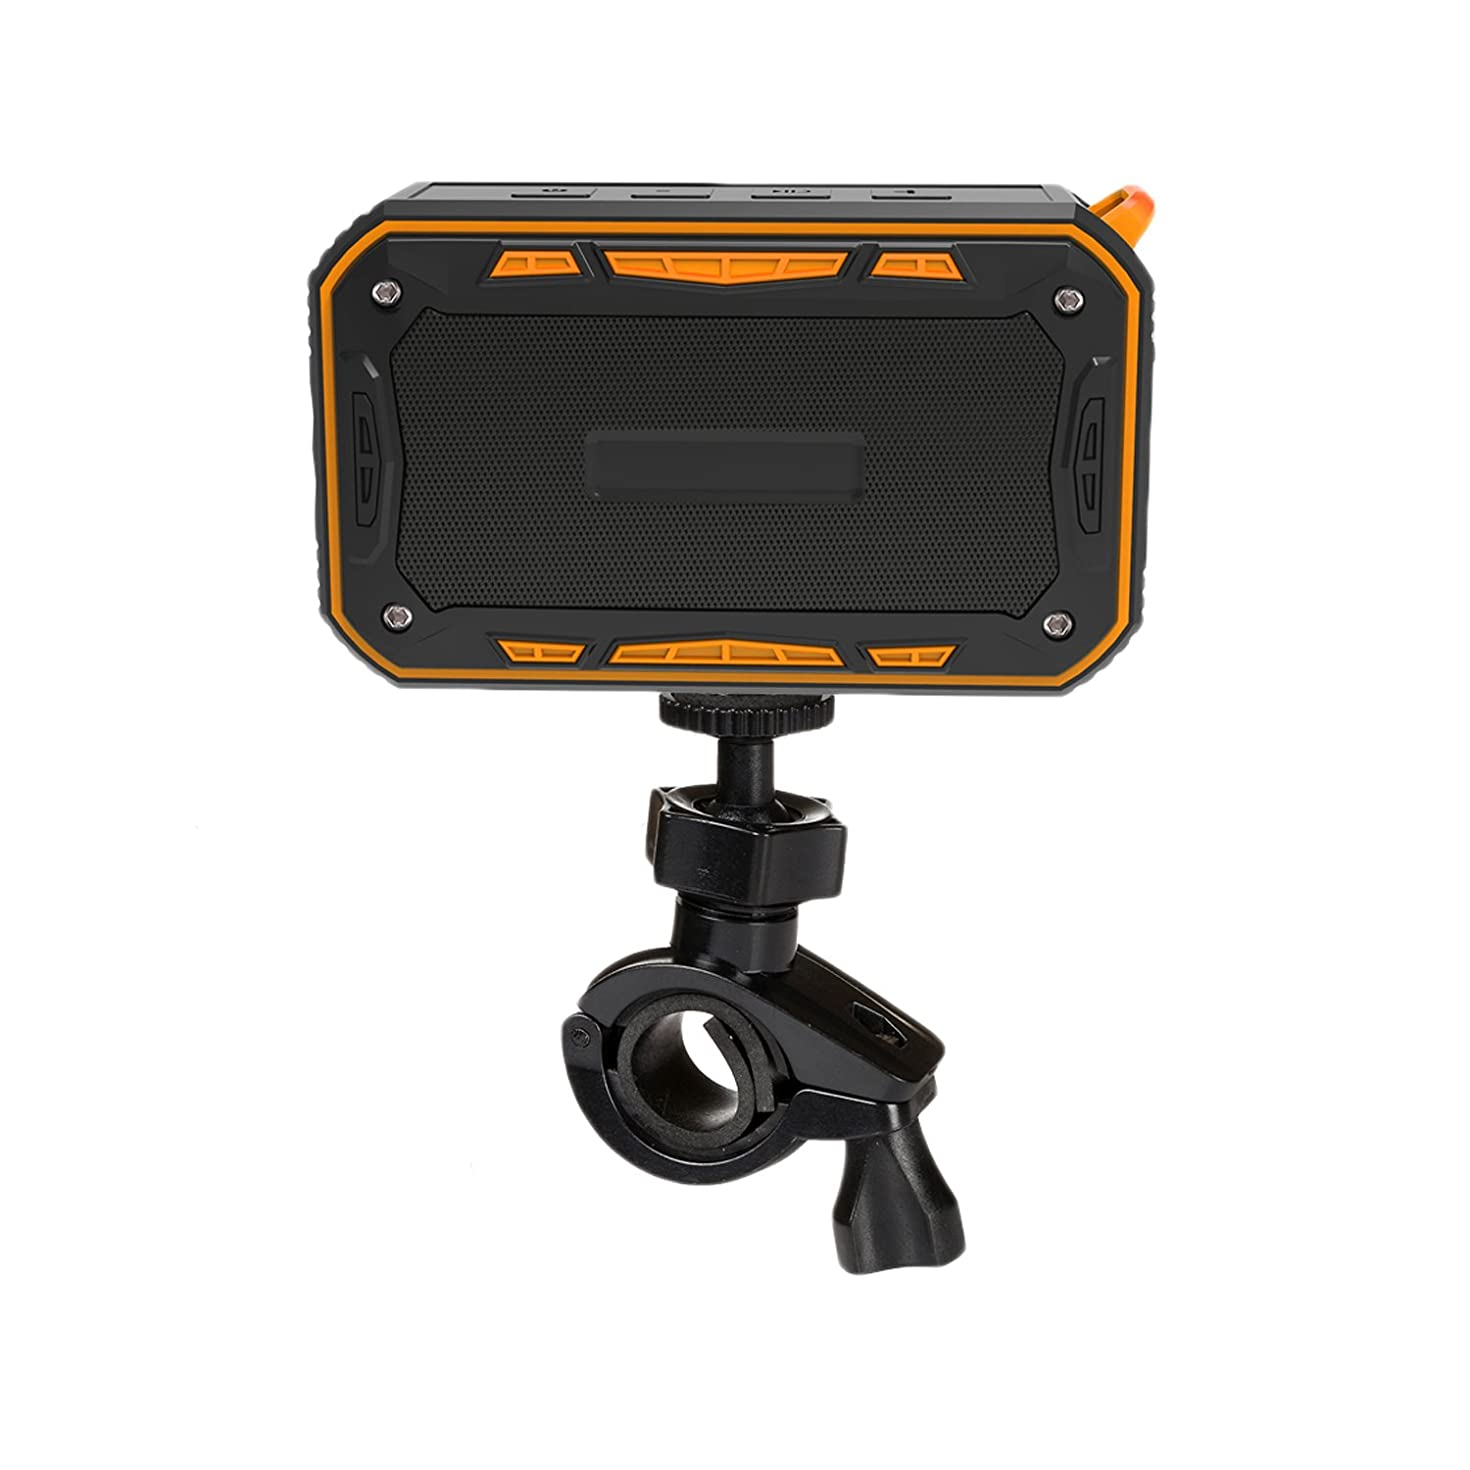 Waterproof Bluetooth Speaker,Outdoor Speaker with bicycle holder, Louder Volume 6W+,Hands Free/FM Mode/AUX Input/TF Card, 2000Mah Emergency Charging Perfect for Beach Shower Outdoor(Orange)